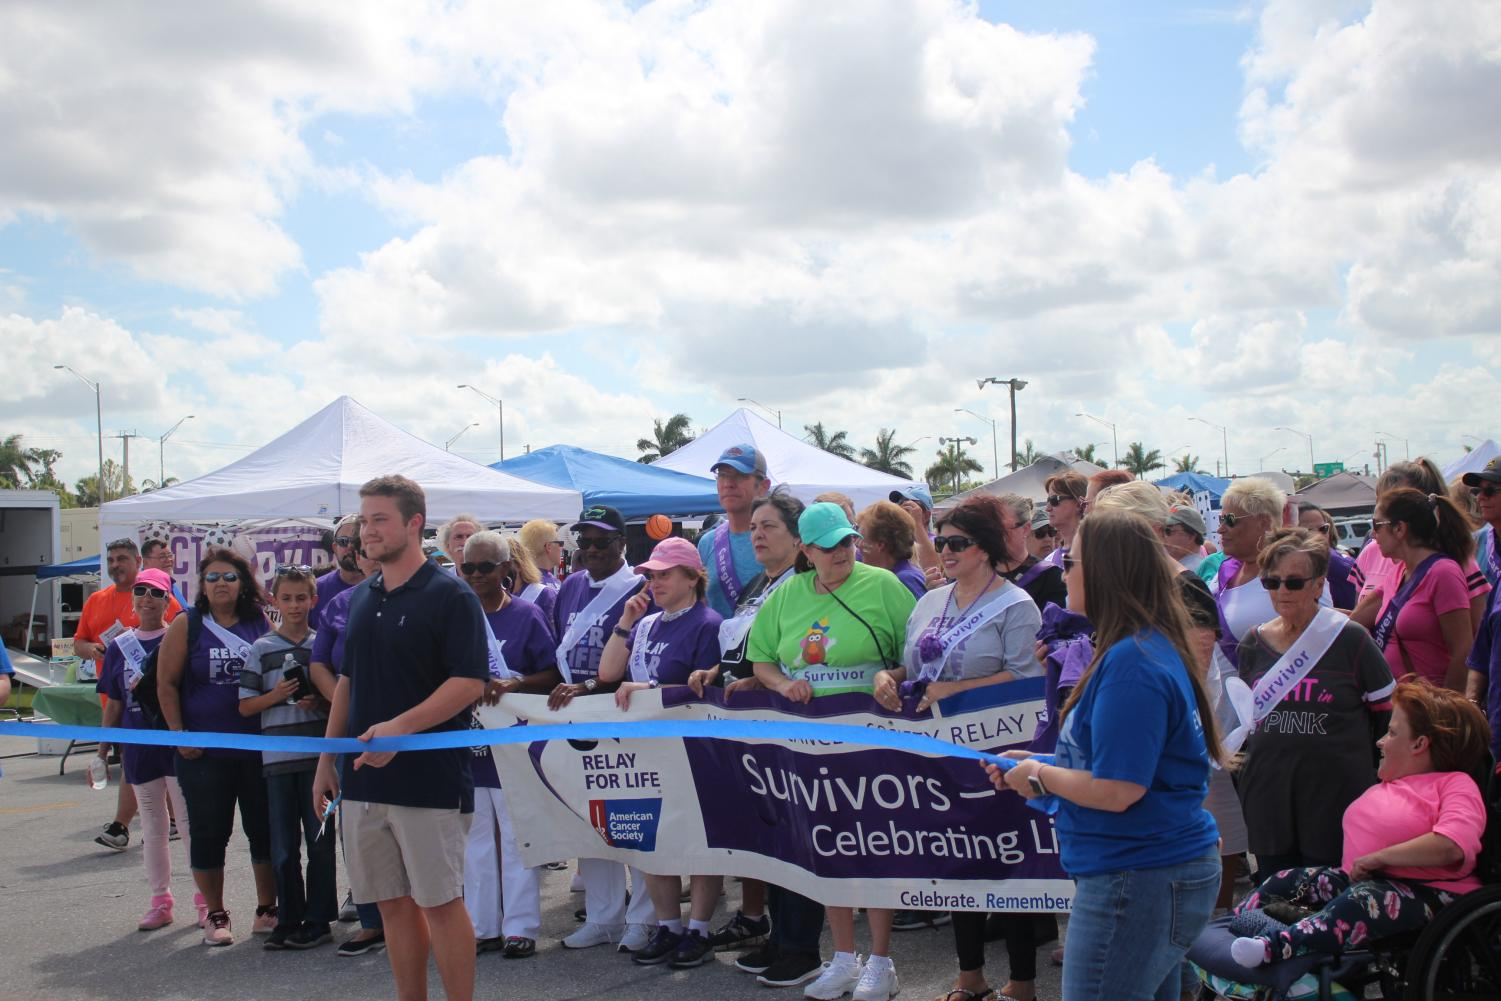 Relay for life initial ribbon cutting walk.